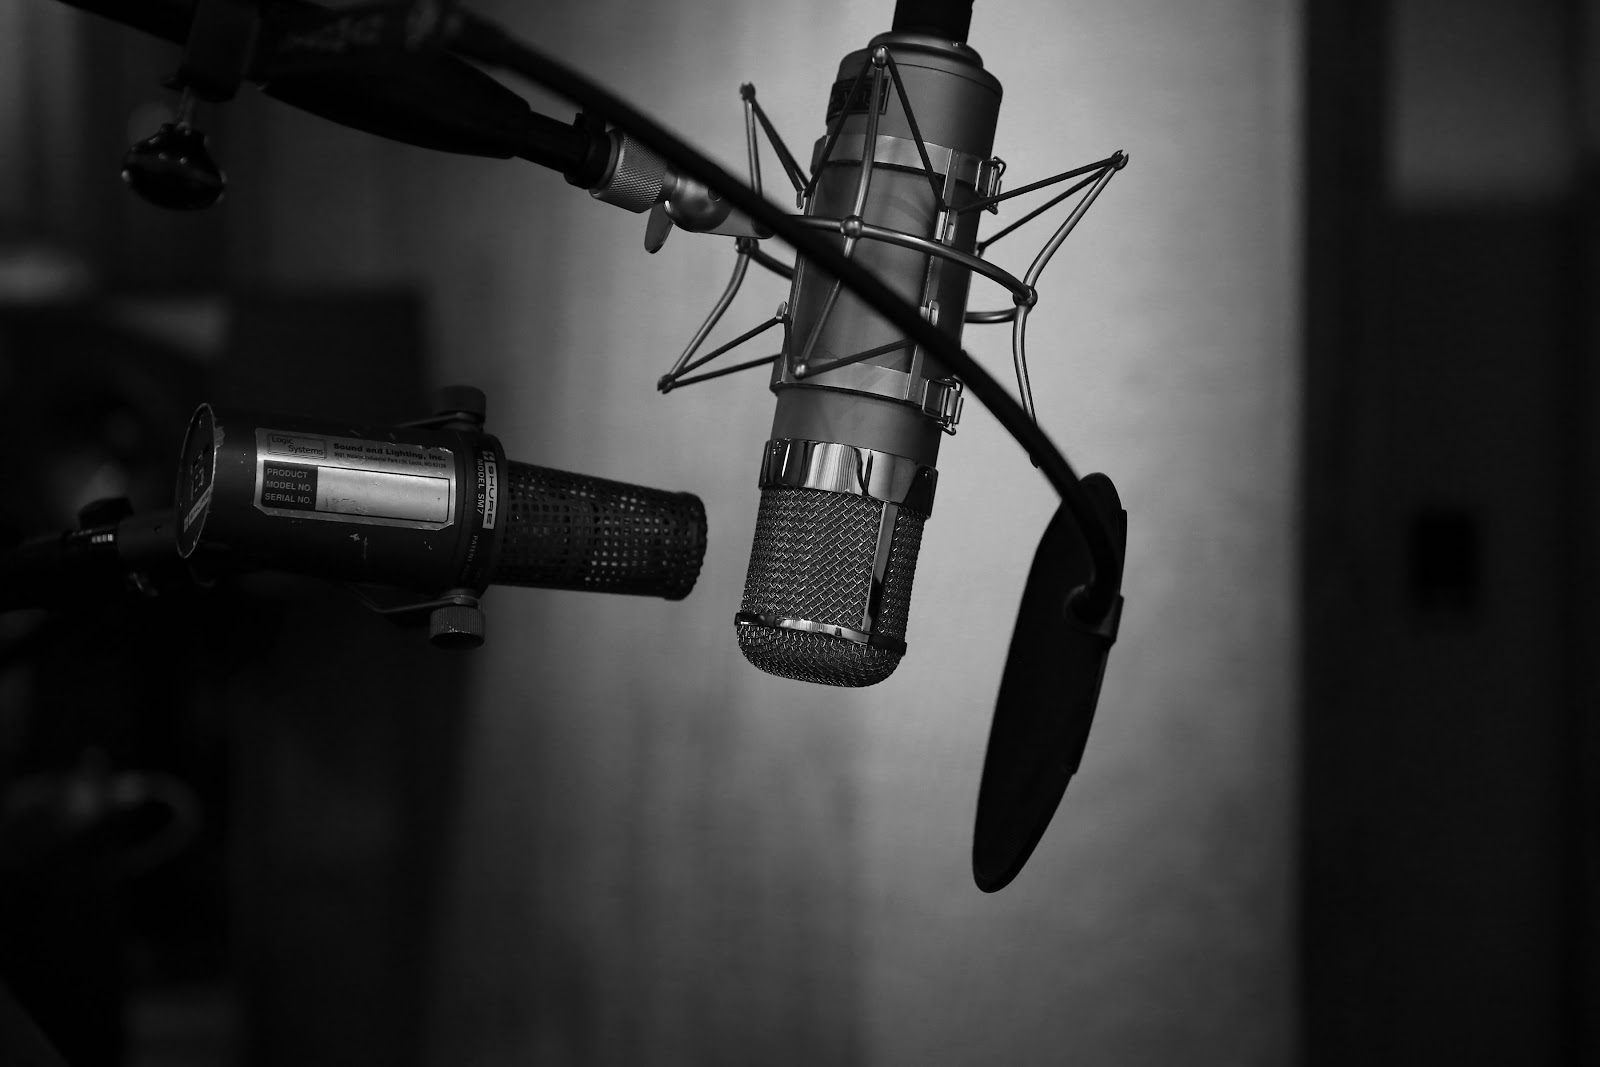 podcasting can showcase your company in an intimate way, which establishes an authentic employer brand